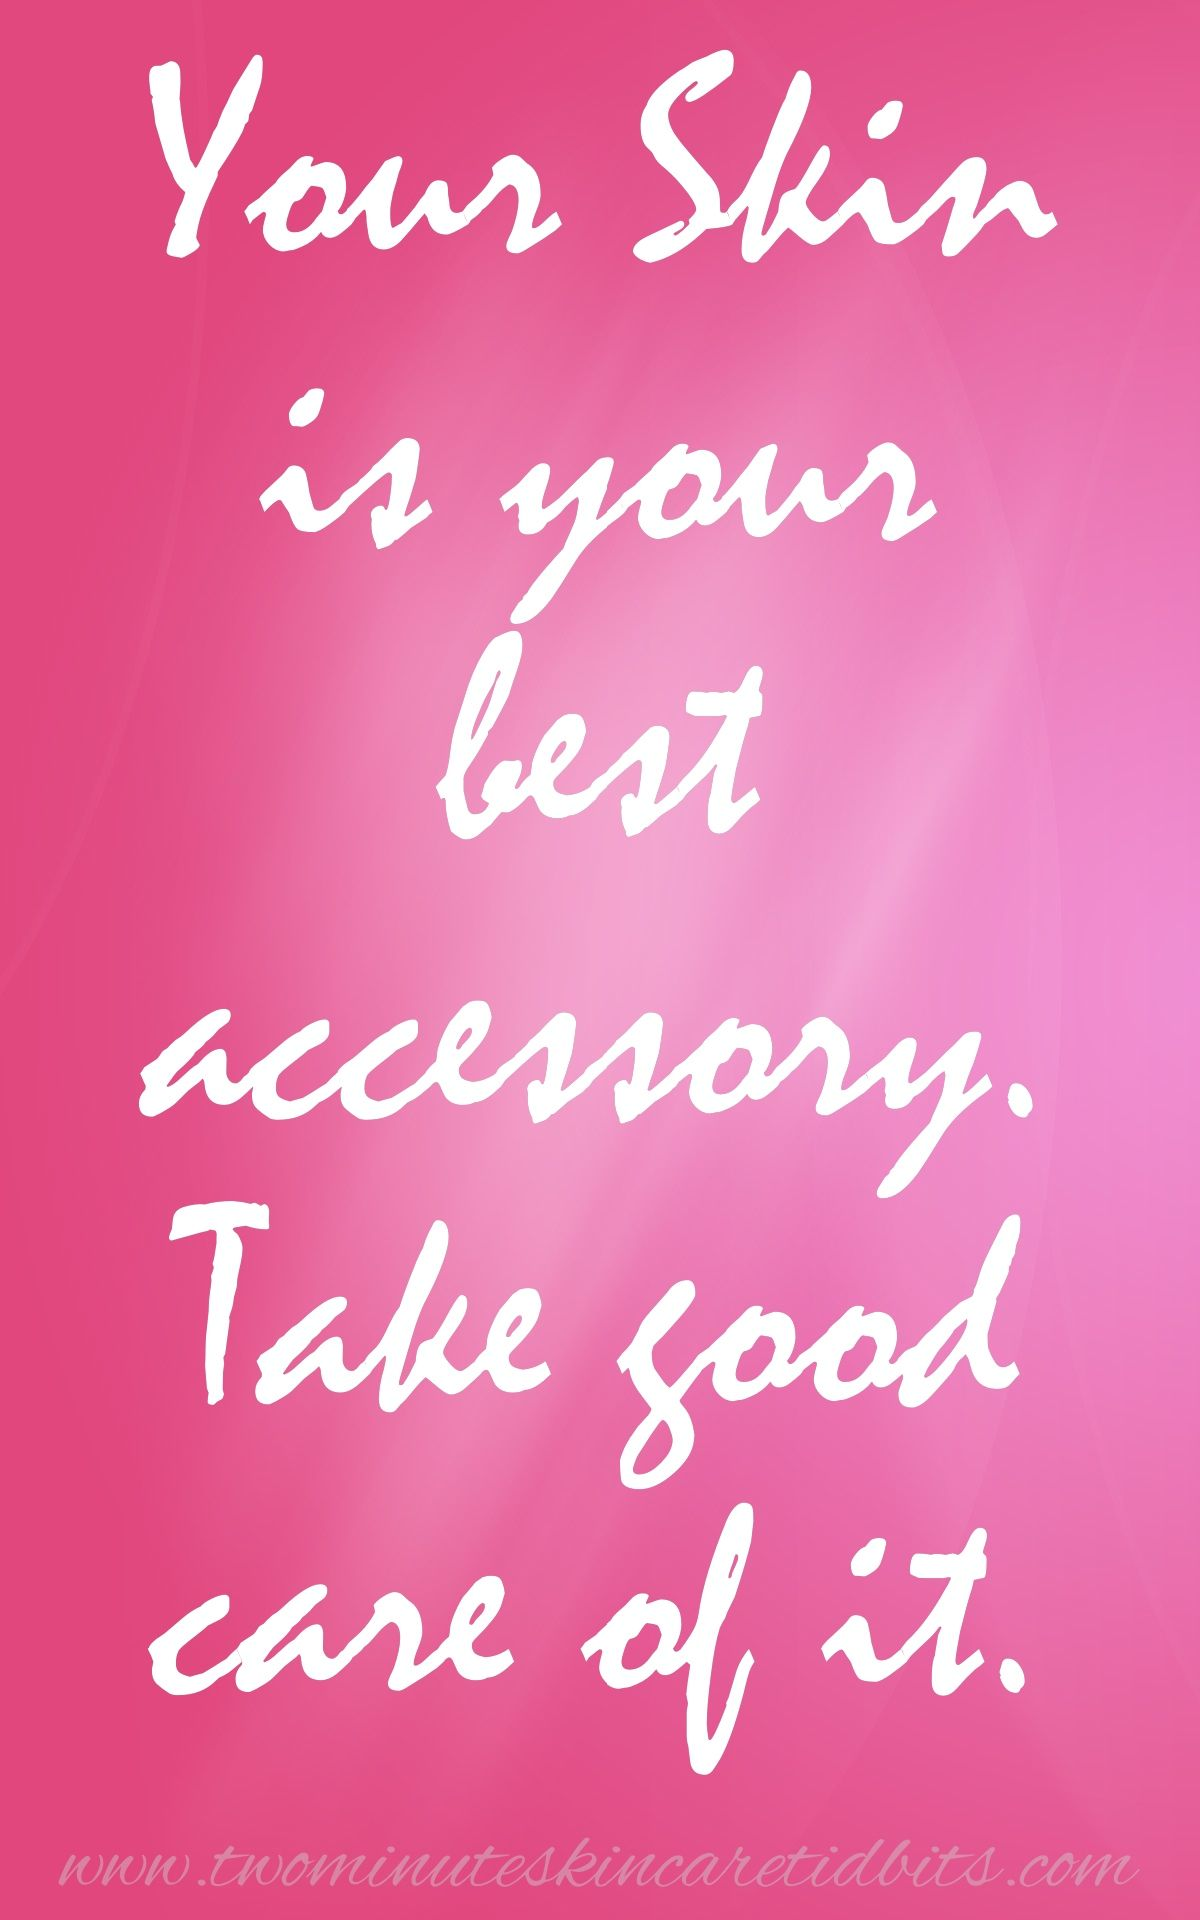 Skincare Quotes. Your skin is your best accessory. www